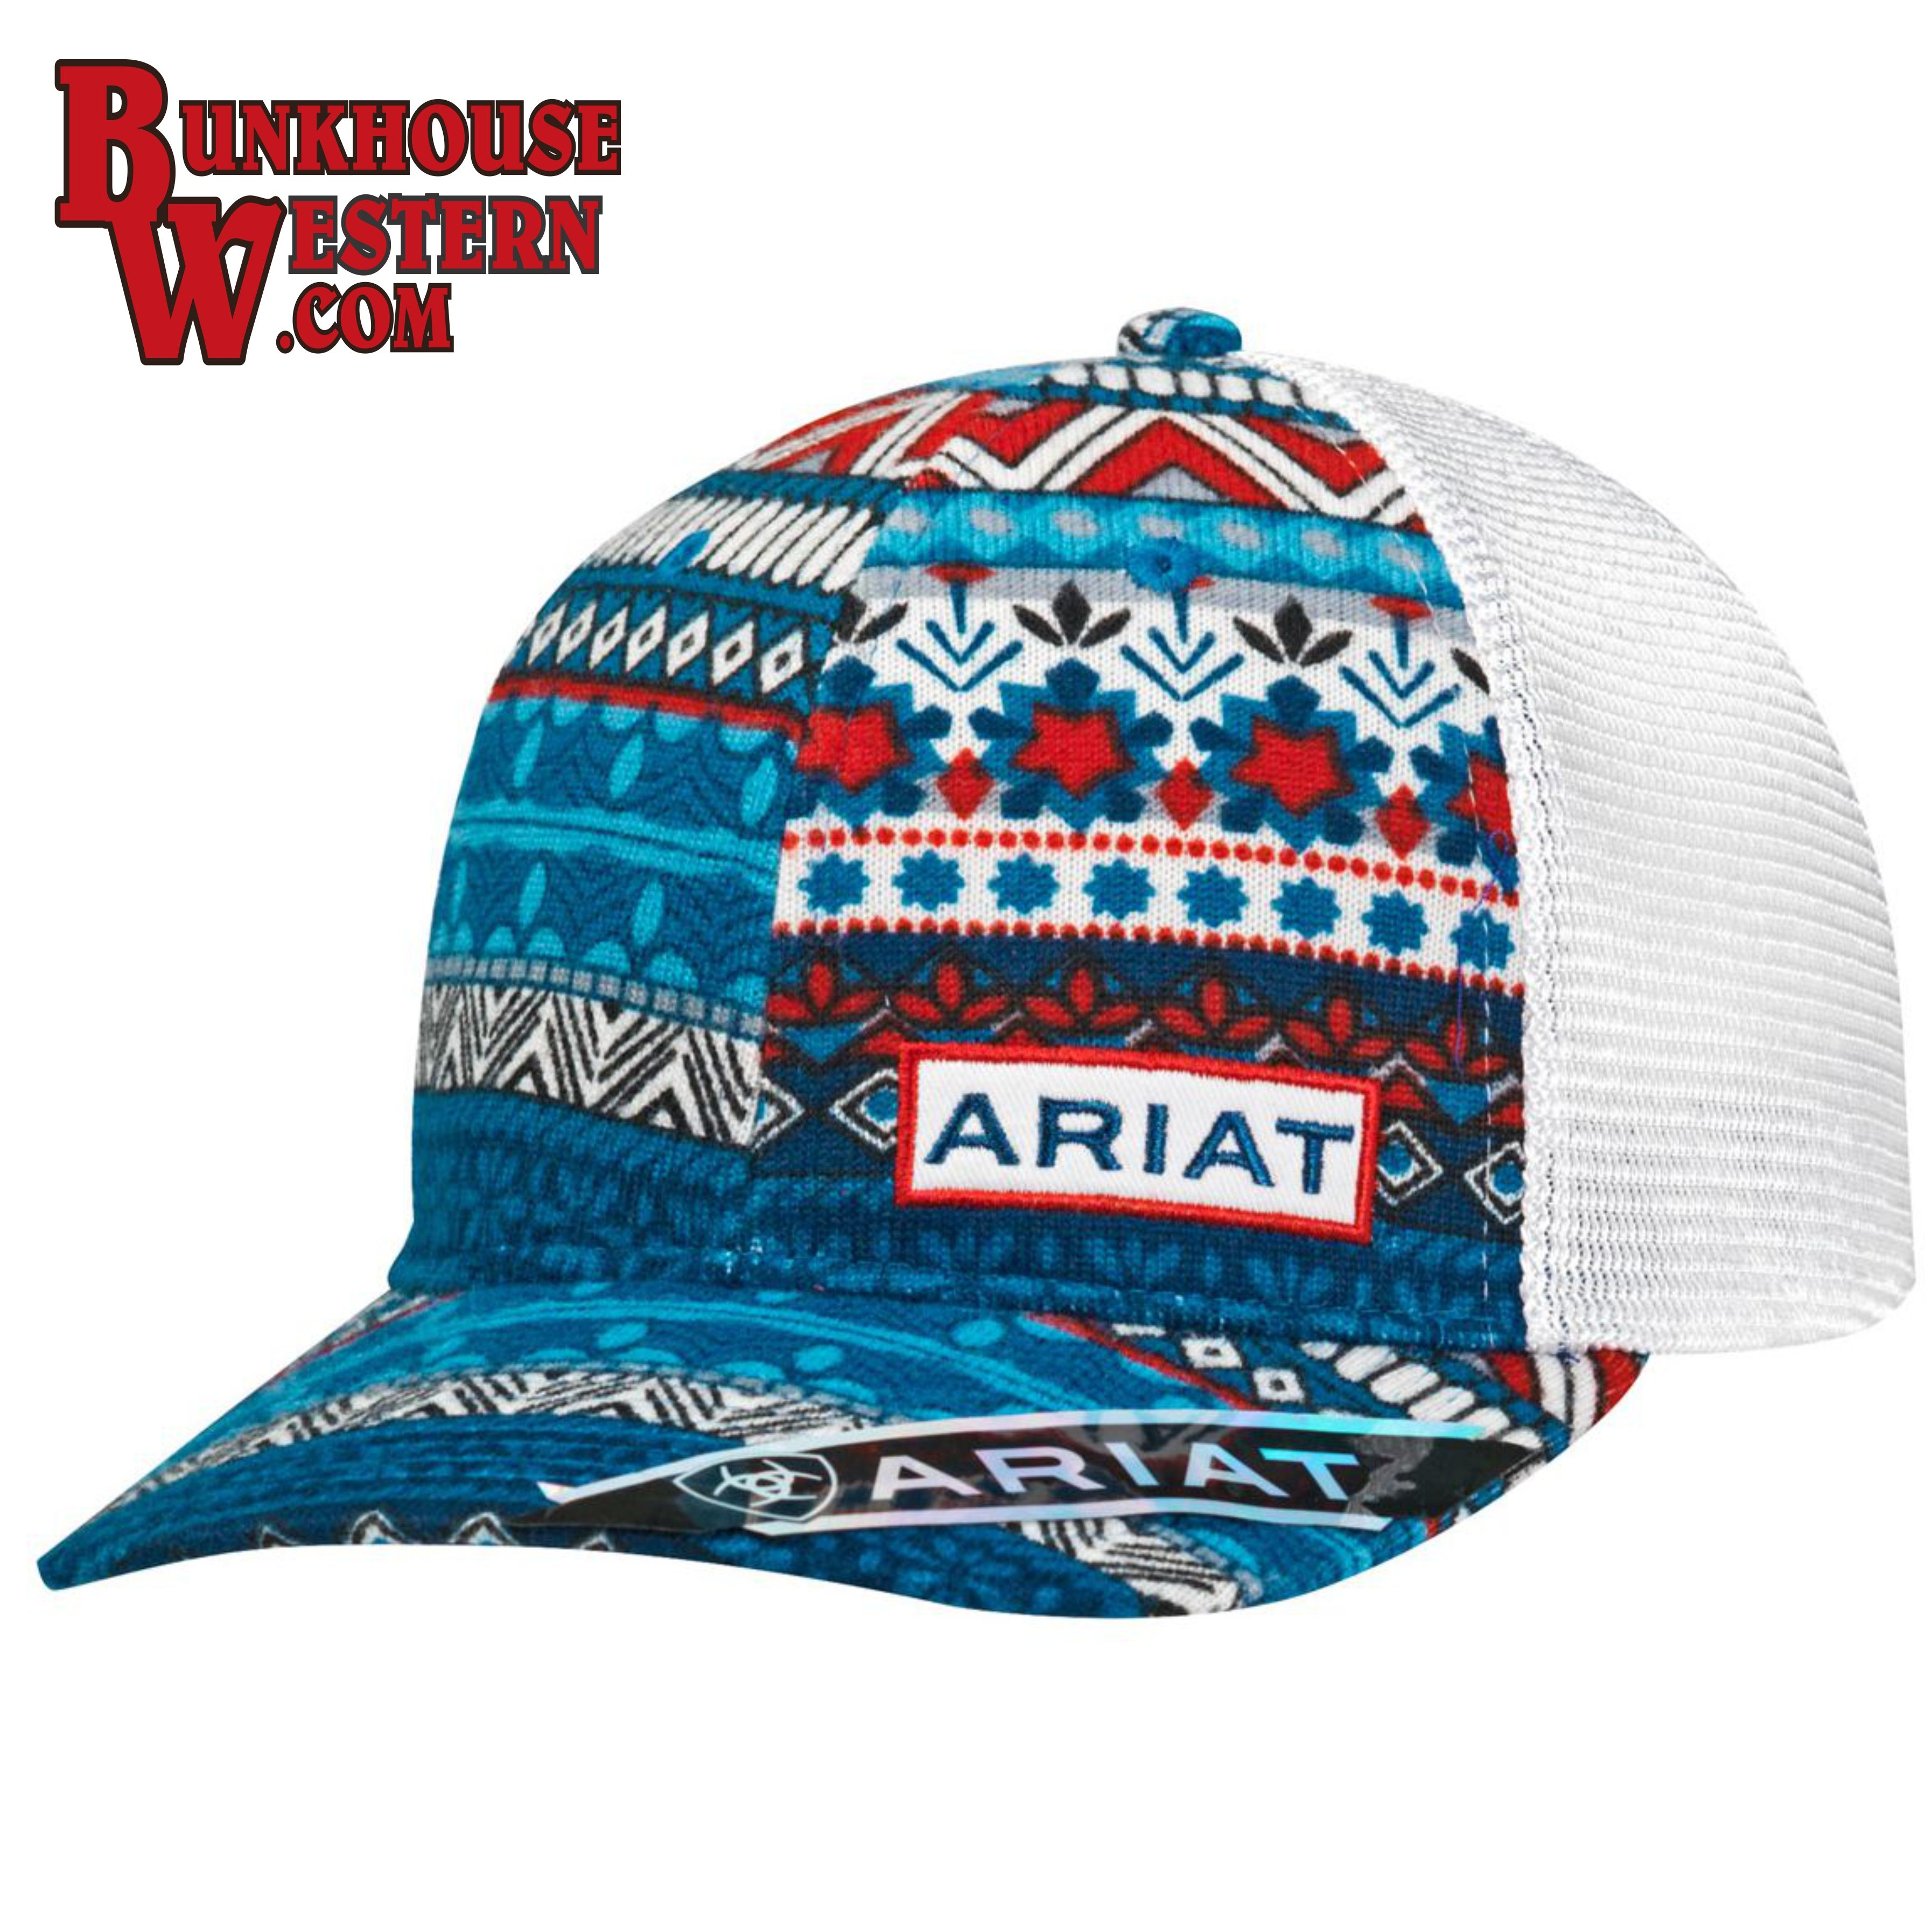 08763acf55524 Ariat Red White   Blue Cap in 2019